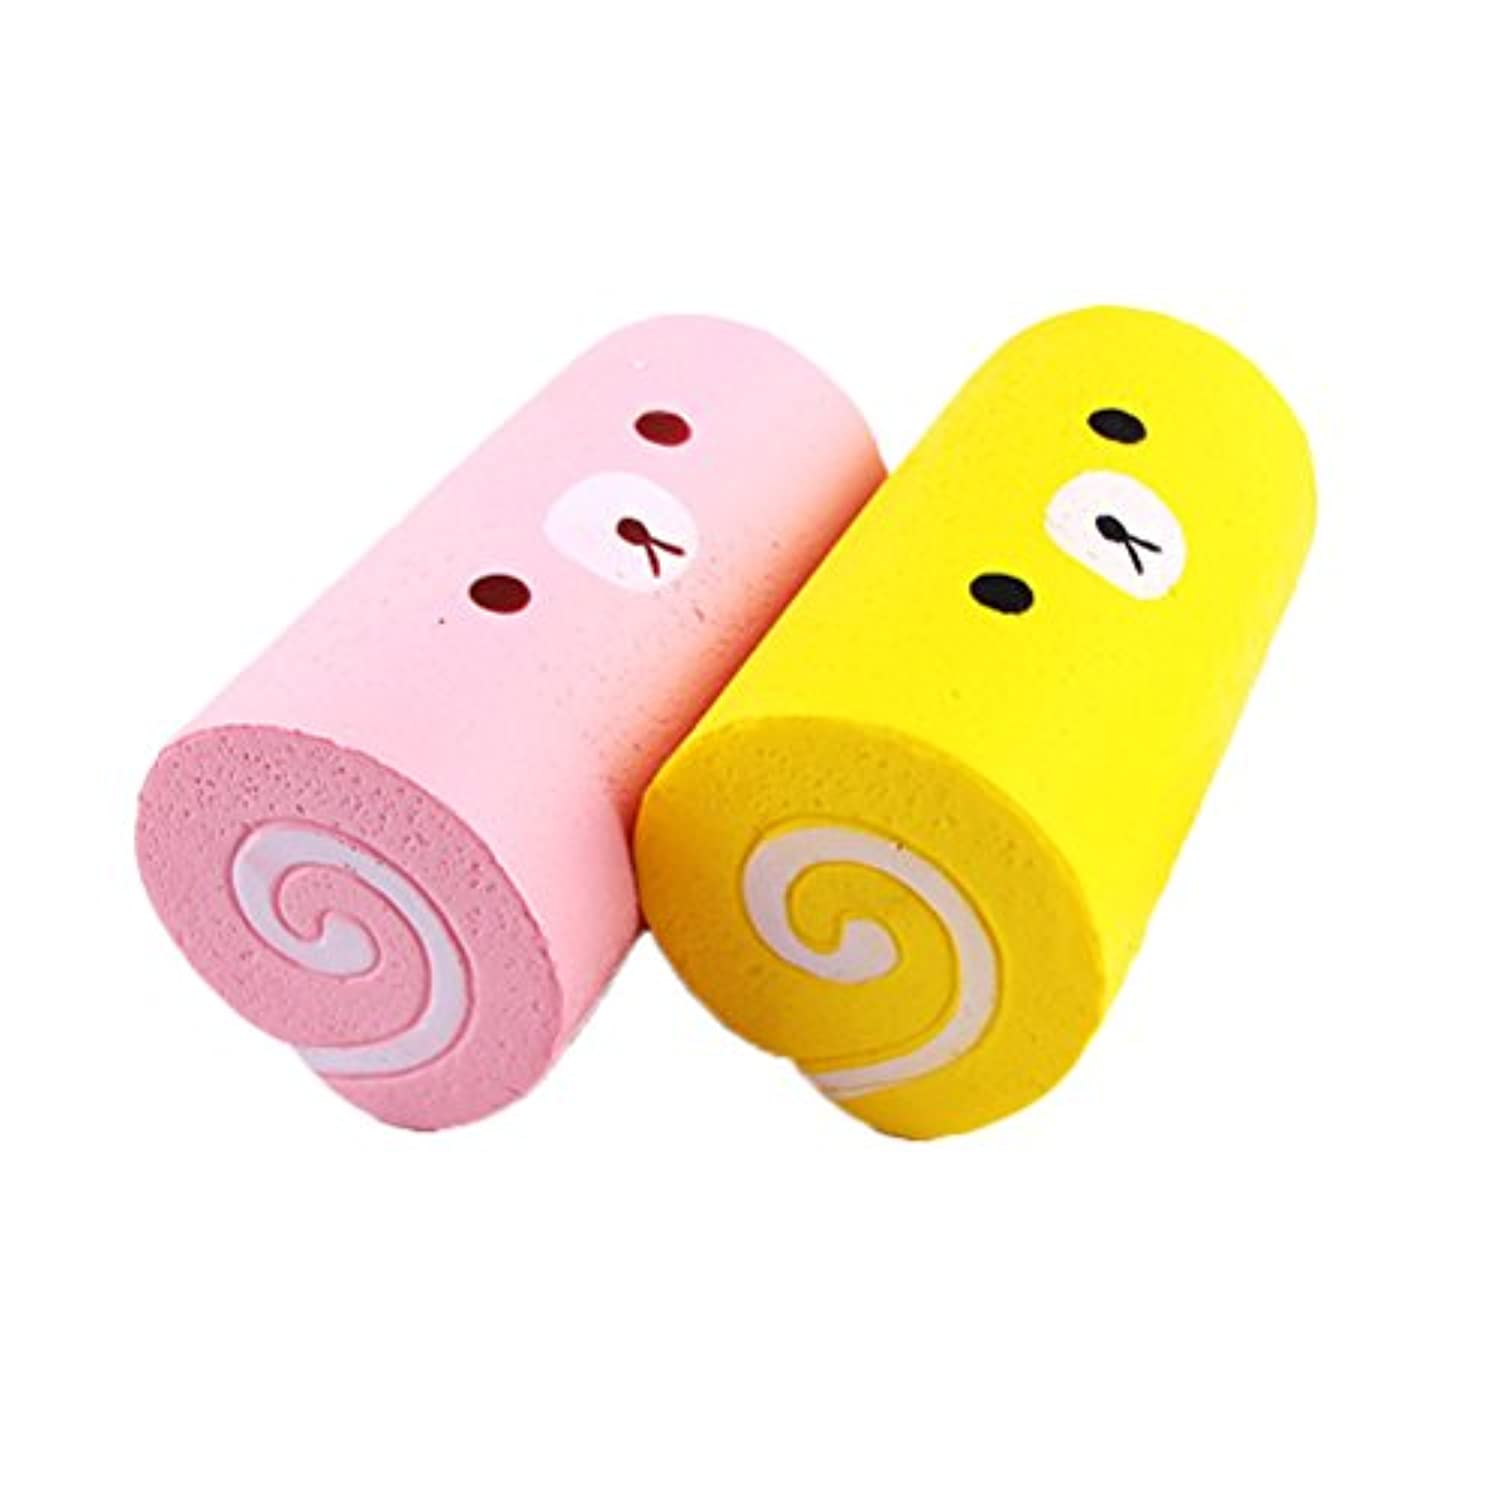 ounona 2個Squeeze Toy Swiss Roll Shaped応力RelieverソフトSlow RisingクリームSCENTE Cute Toy 15 x 8.5 CM (ランダムカラー)